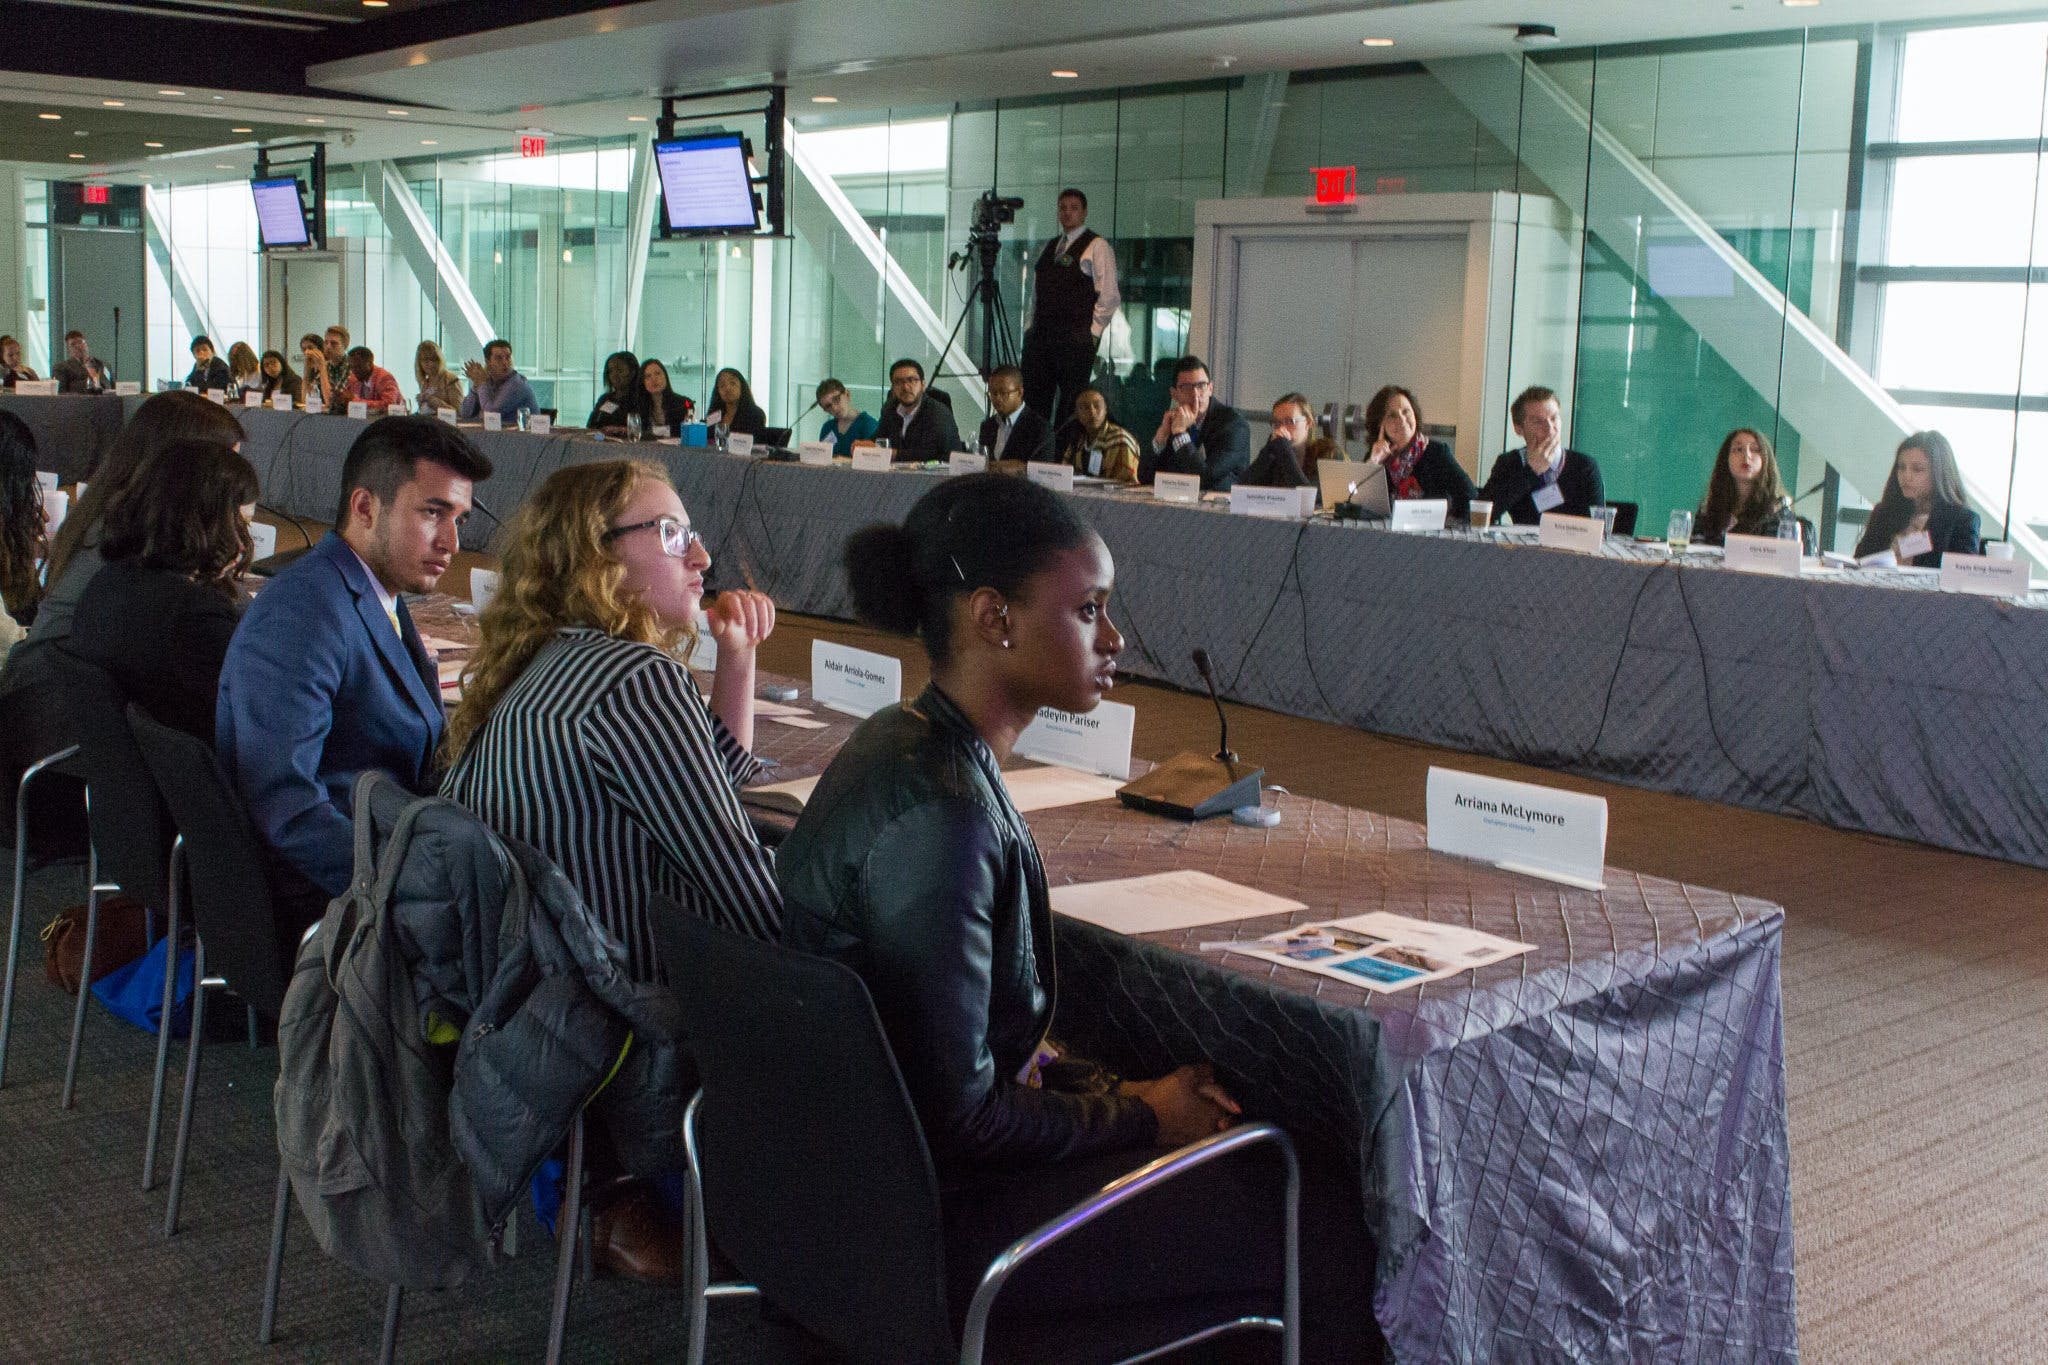 "<p>Students discuss First Amendment rights at the Newseum in Washington, D.C.,&nbsp;on April 2. 2016, during a conference sponsored by the Newseum Institute and Knight Foundation. Photo (cc) by&nbsp;<a href=""https://flic.kr/p/F3maiD"">Mark Schierbecker</a>&nbsp;on Flickr.&nbsp;</p>"